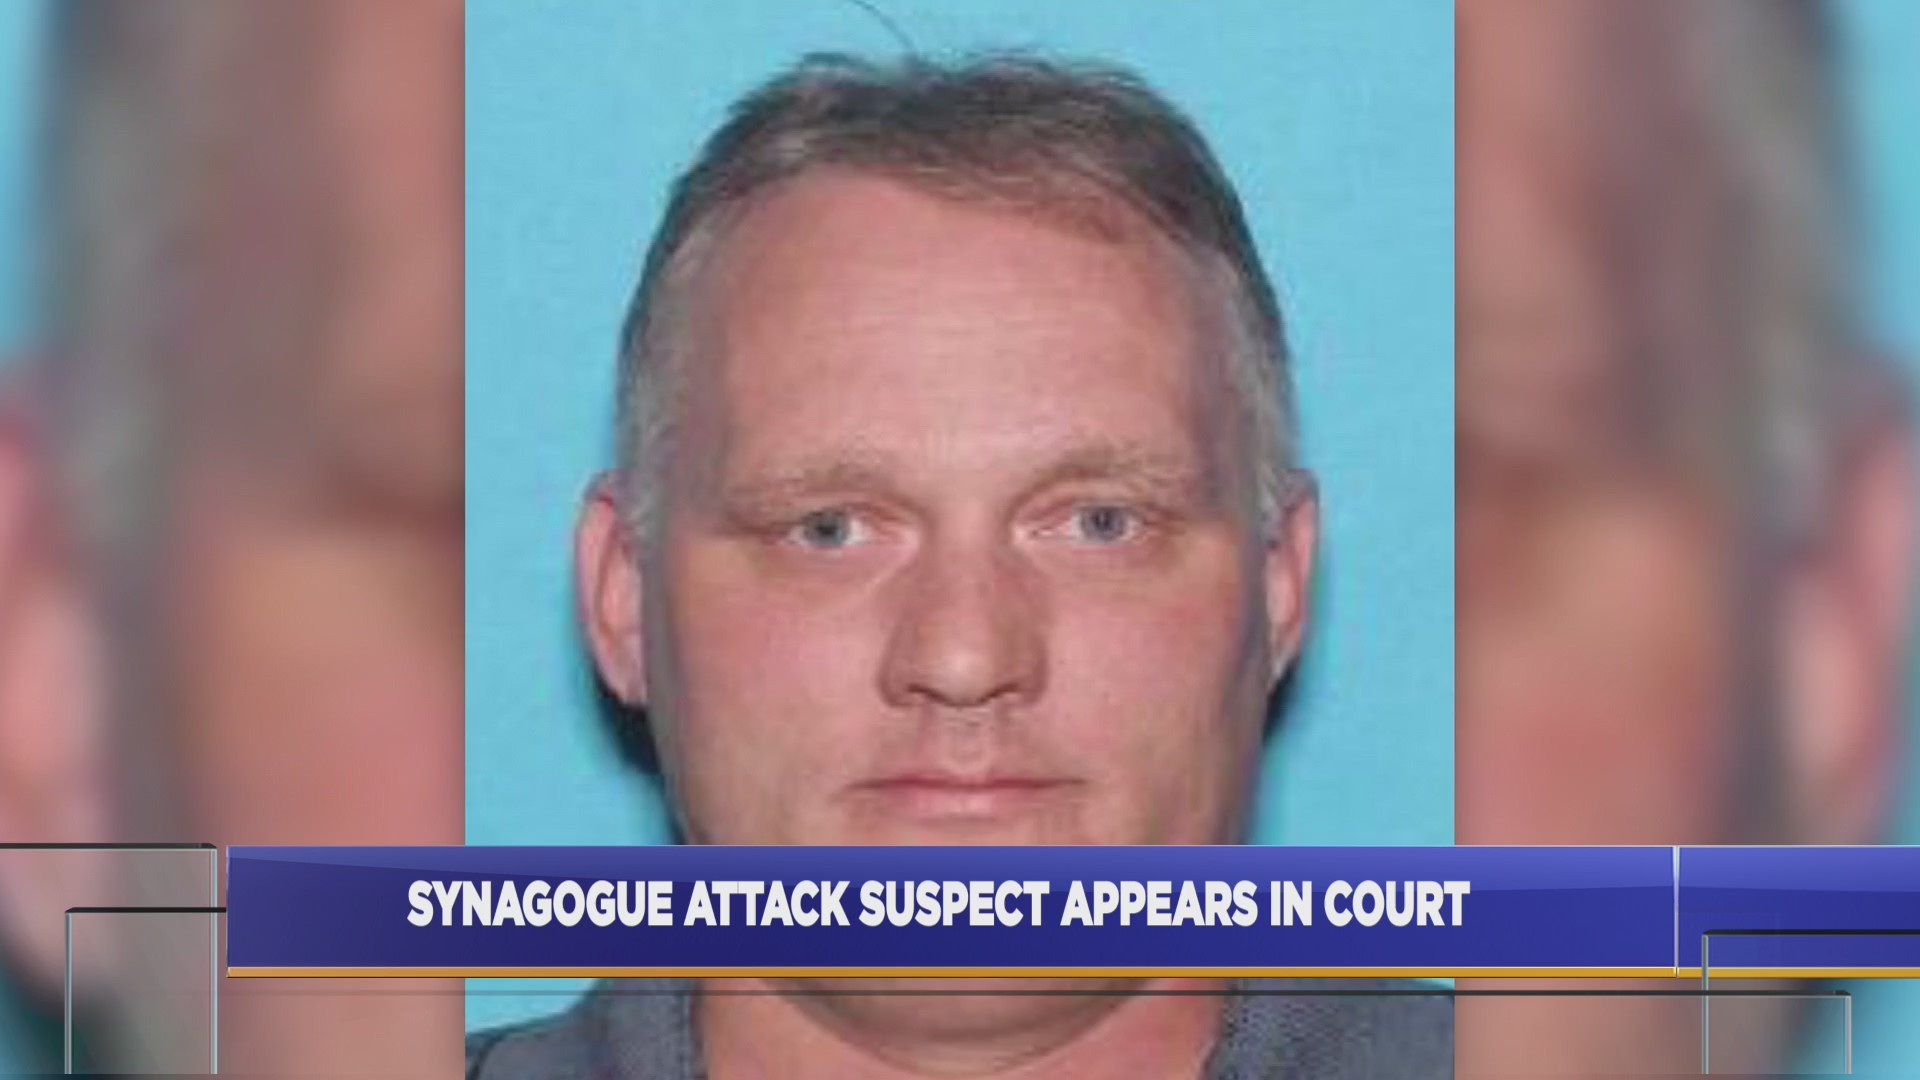 Synagogue_attack_suspect_appears_in_cour_0_20181102180041